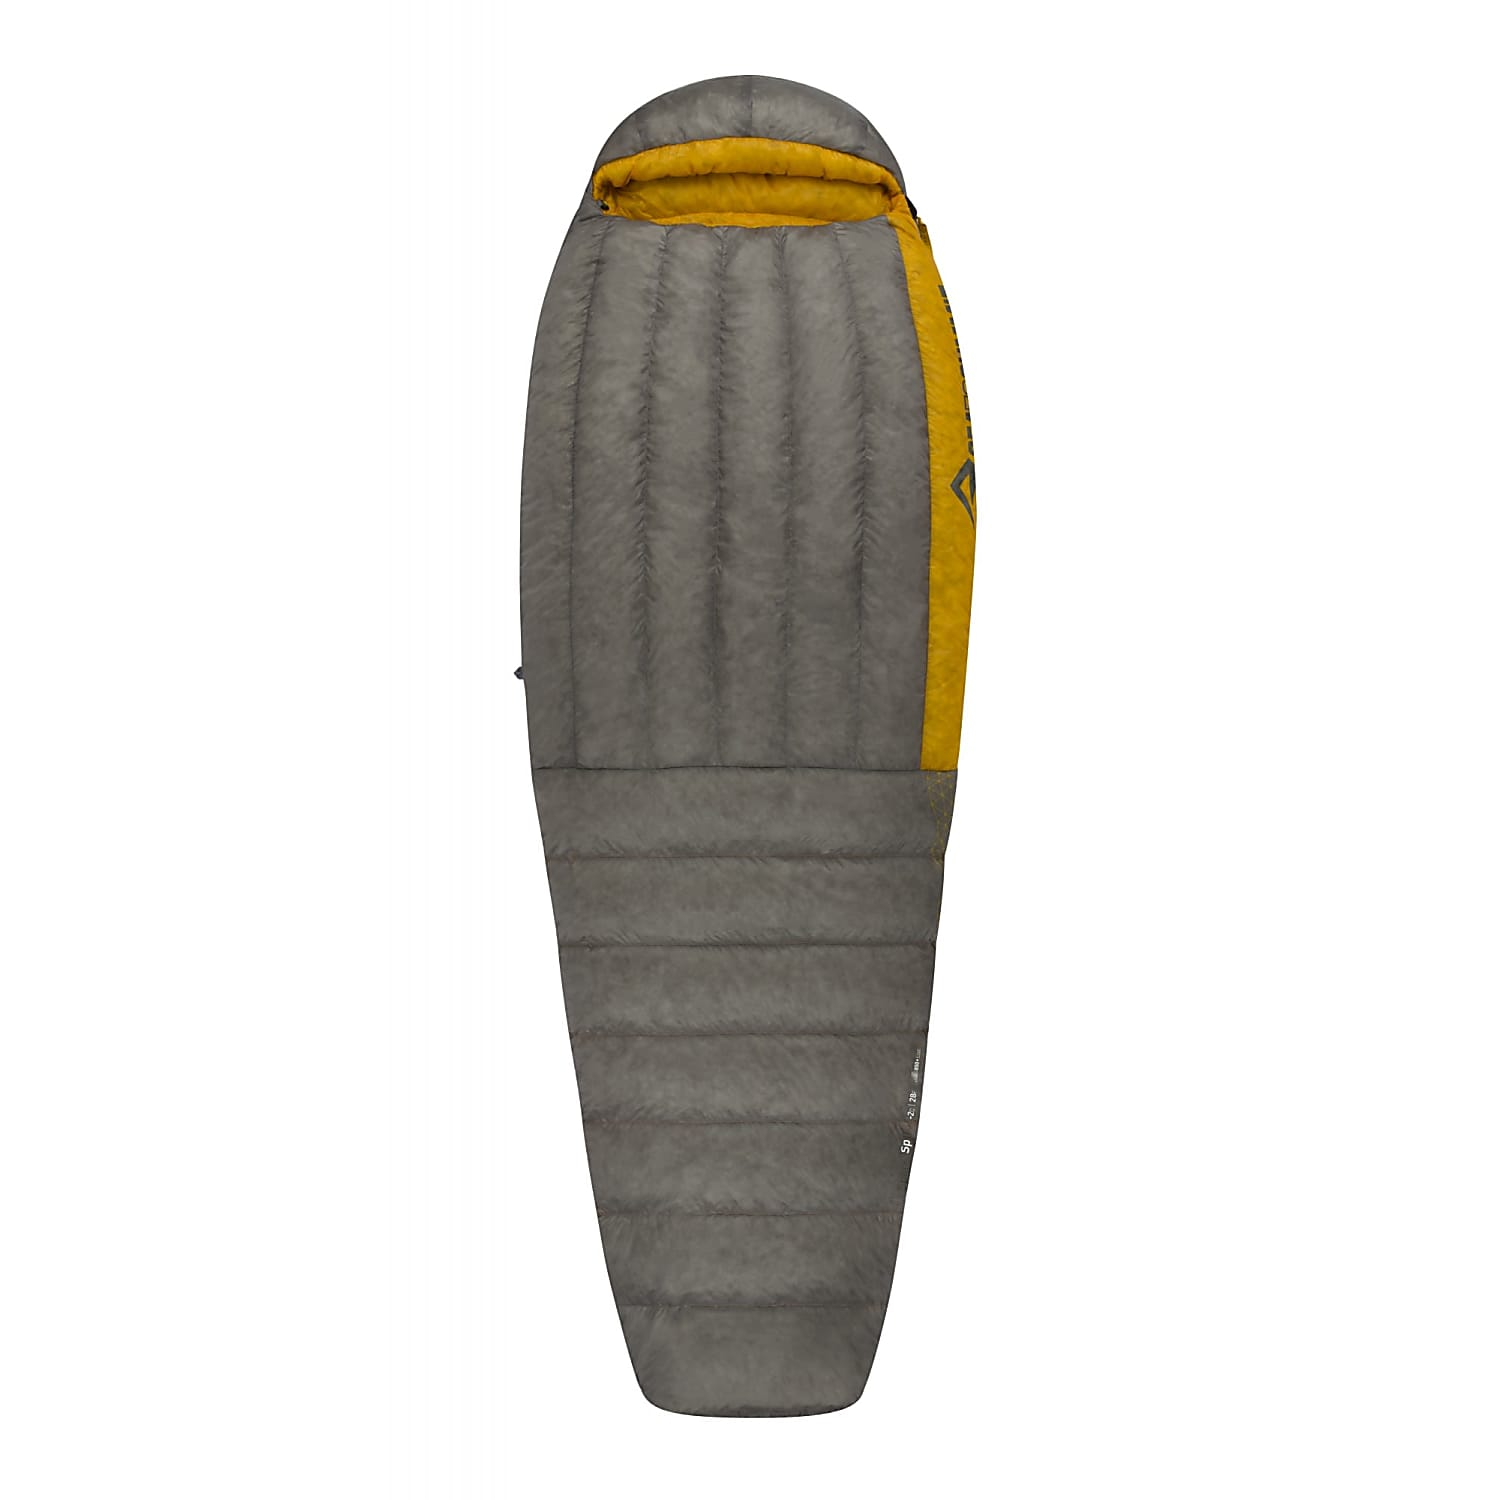 Sea to Summit Spark II Long sleeping bag shown fully closed and laid flat in grey and yellow colour